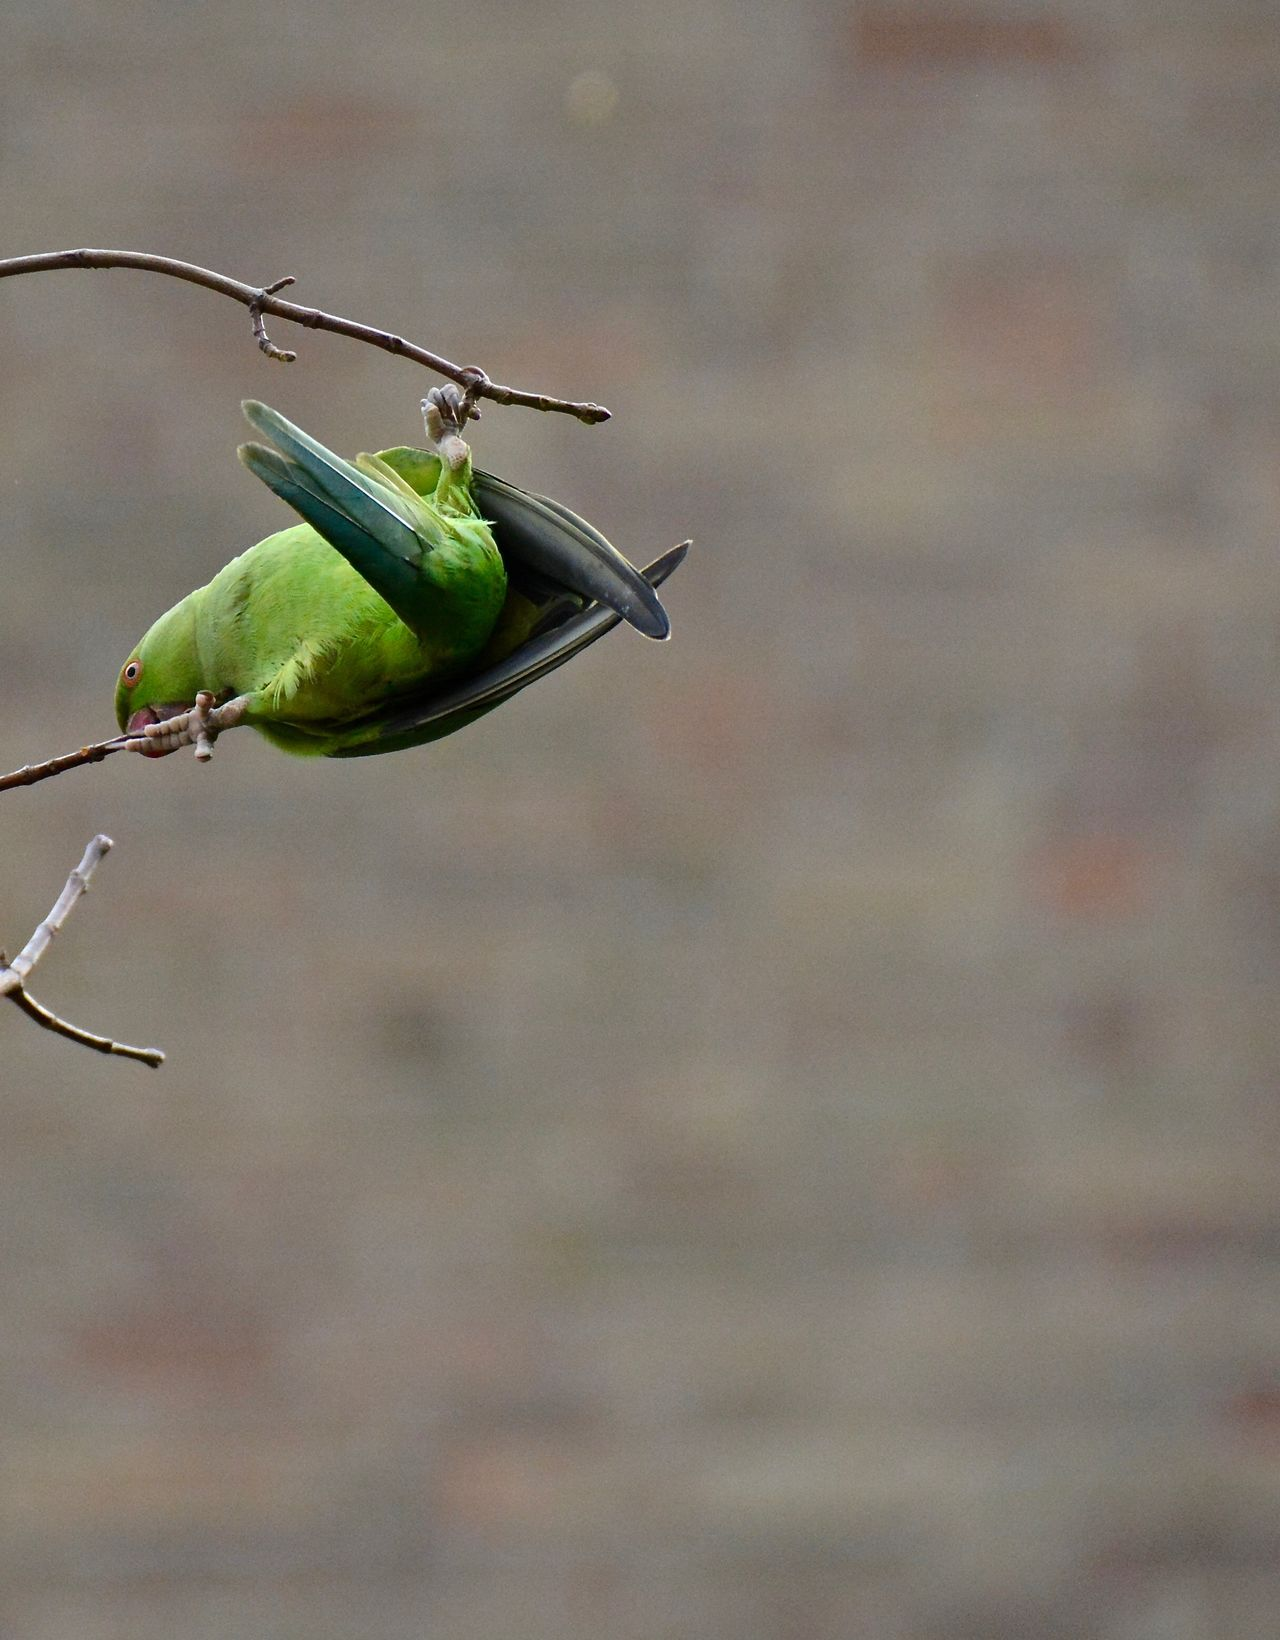 Acrobatics  Trees And Nature Nature Photography Natural Beauty Birds_collection Exotic Creatures Urban Nature Bird Photography RoseRingedParakeet